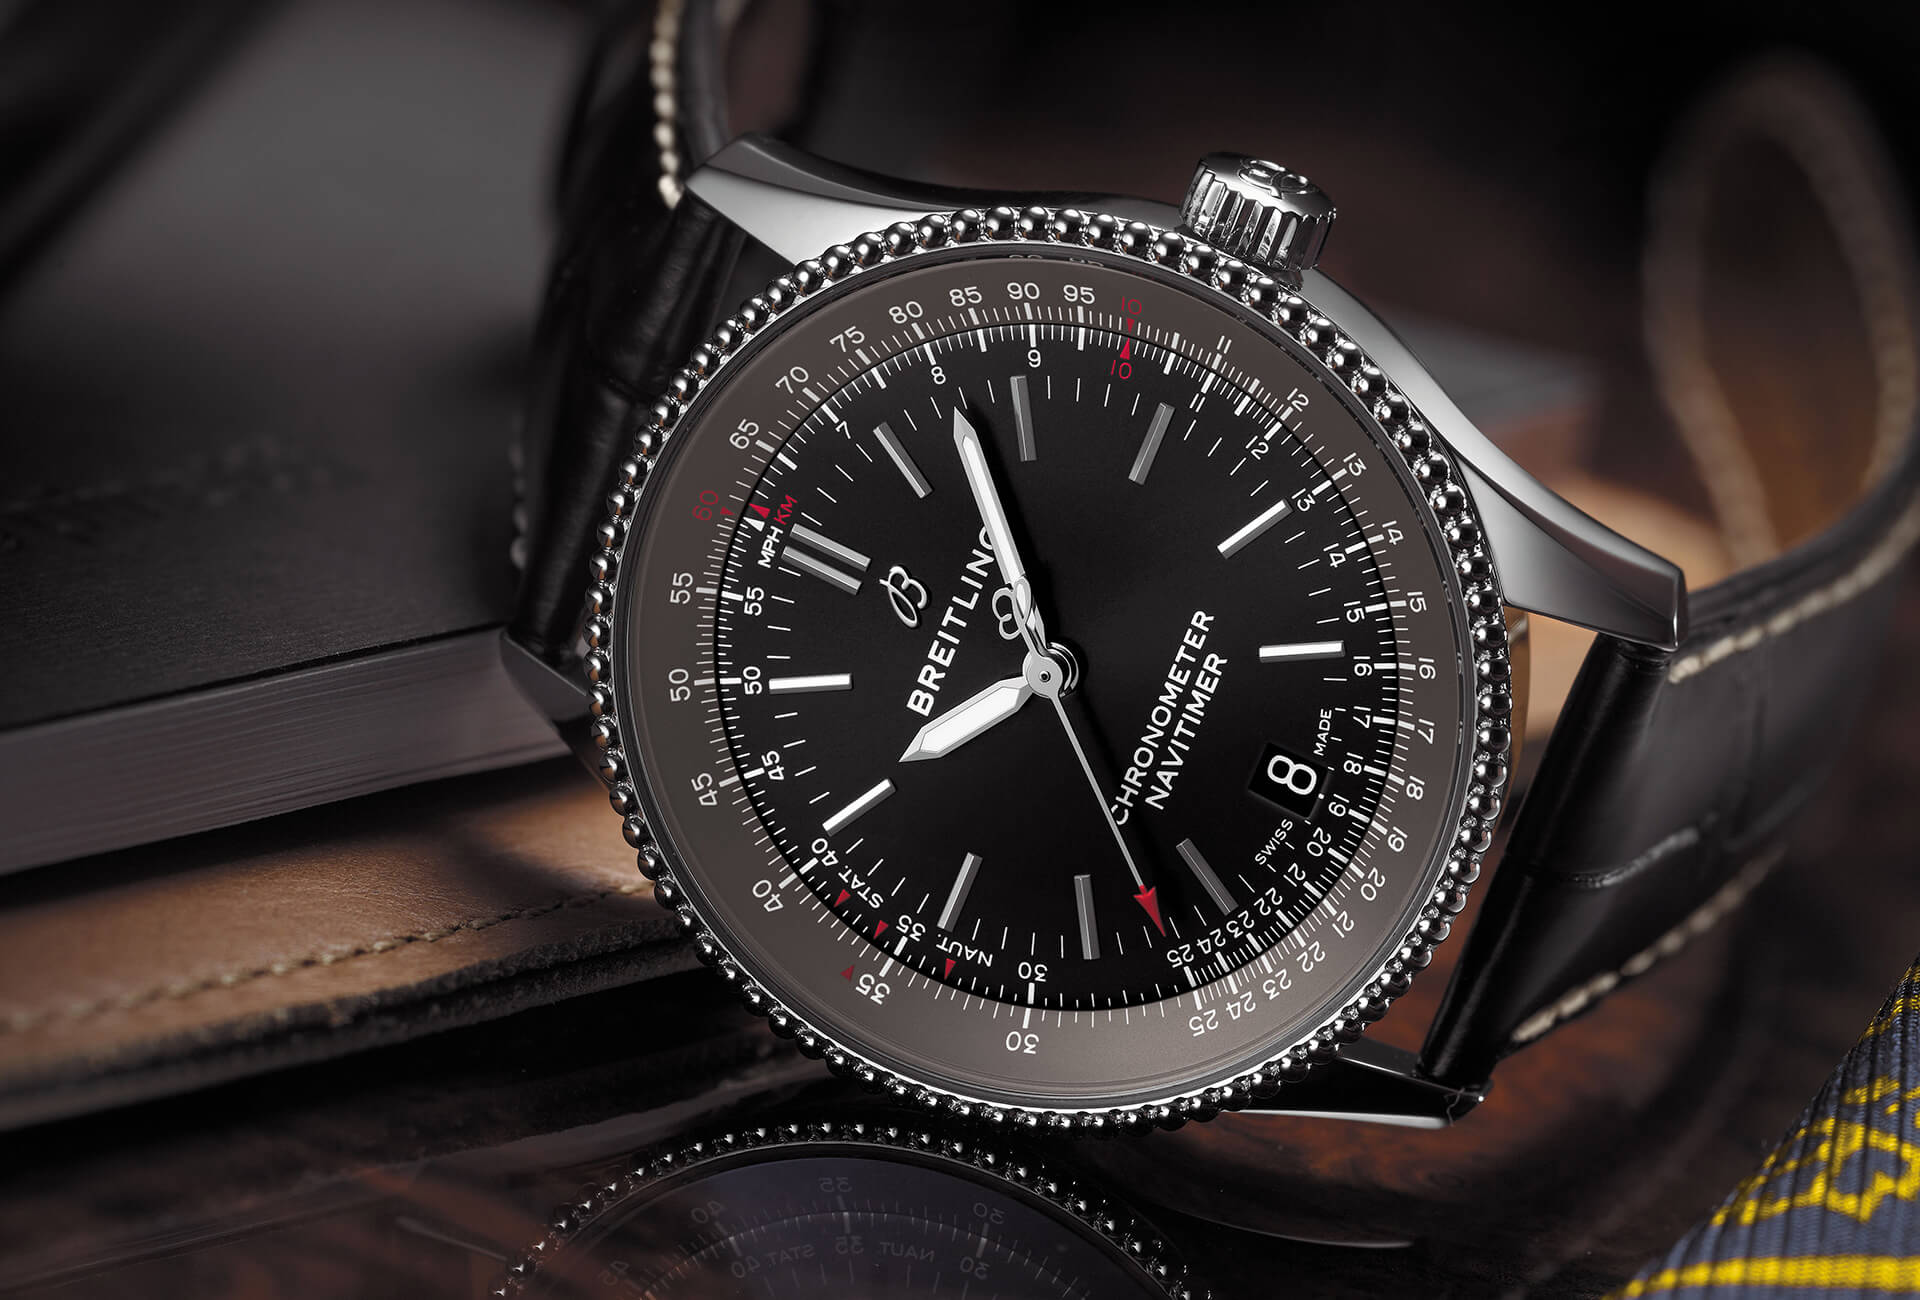 A – Fhh Navitimer Toned-down Breitling Introduces Journal